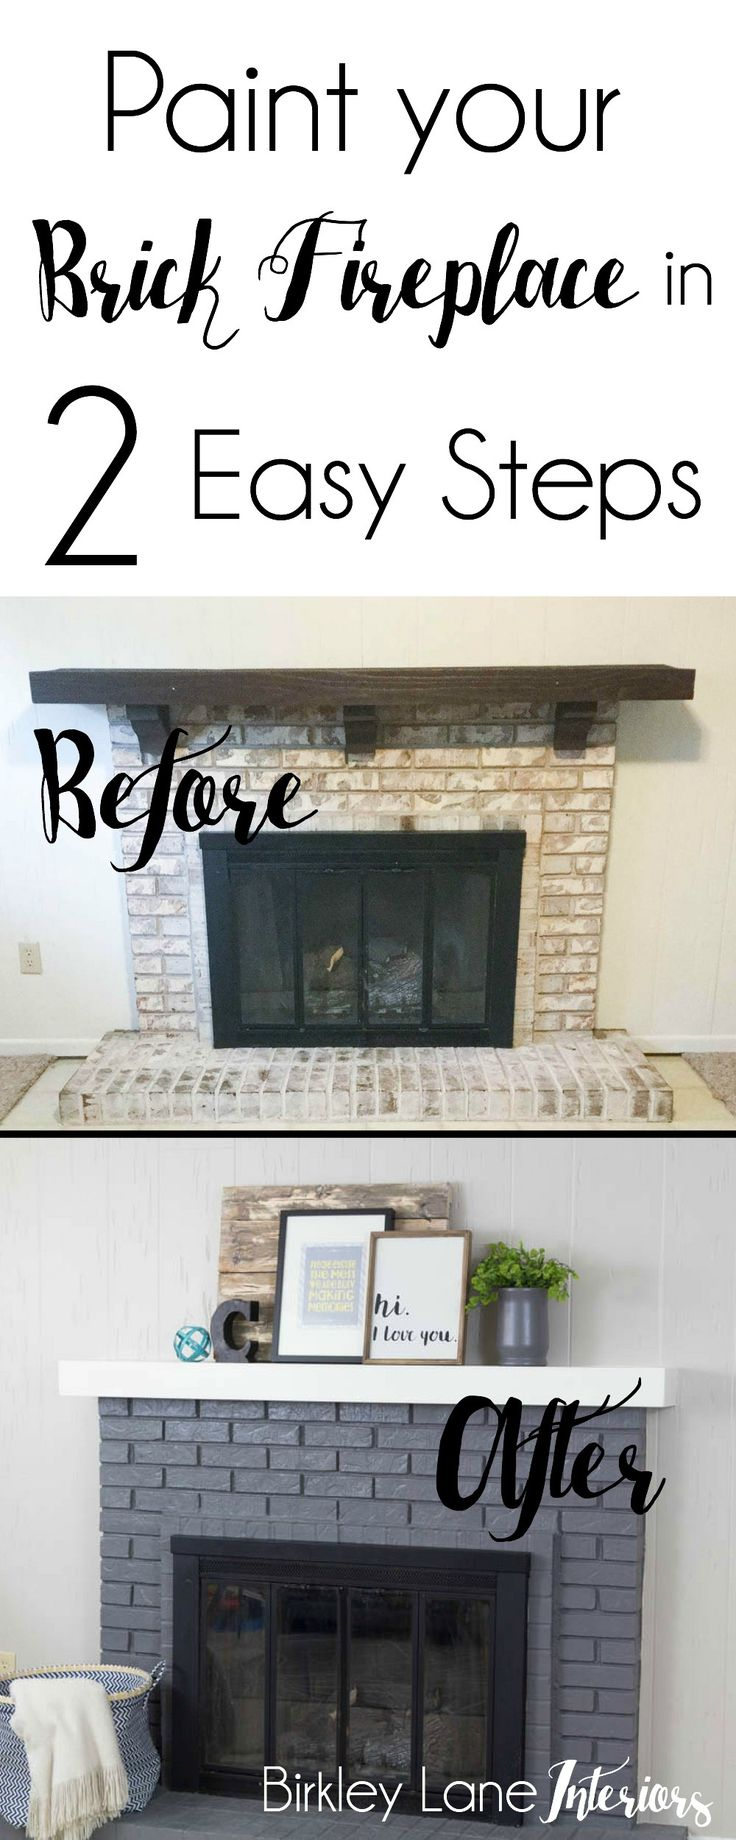 Paint your brick fireplace in two easy steps, the quick and easy way to paint your brick fireplace, how to paint a brick fireplace, brick fireplace makeover, grey fireplace brick, easy fireplace makeover, easy fireplace diy, update fireplace brick, painting a brick fireplace, pained brick fireplace